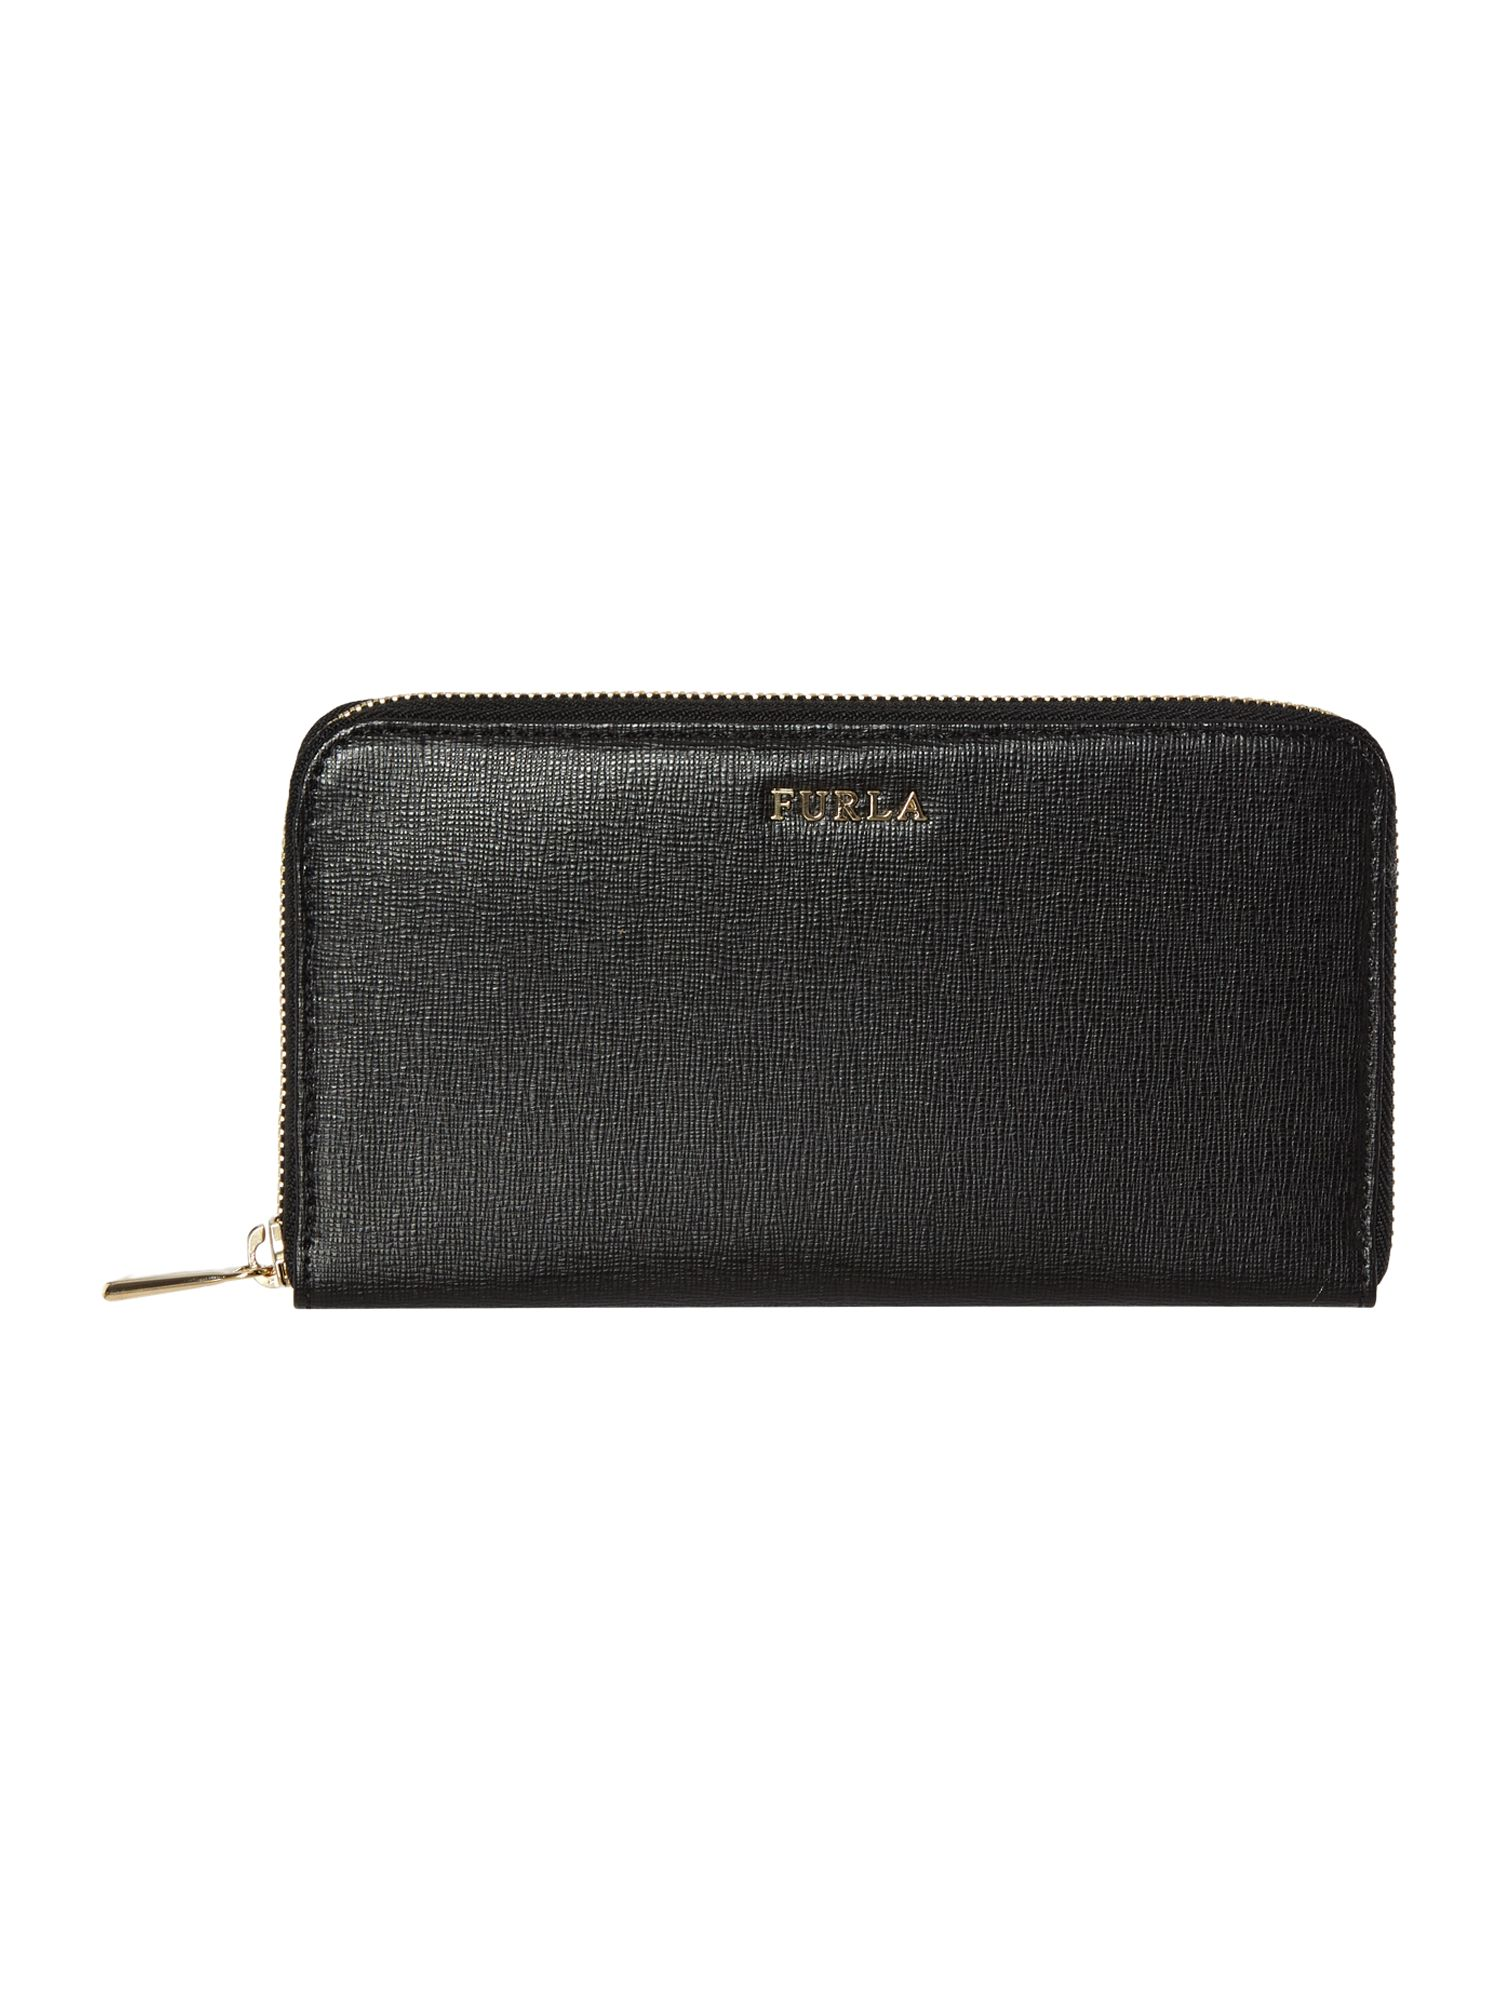 Babylon black large ziparound purse